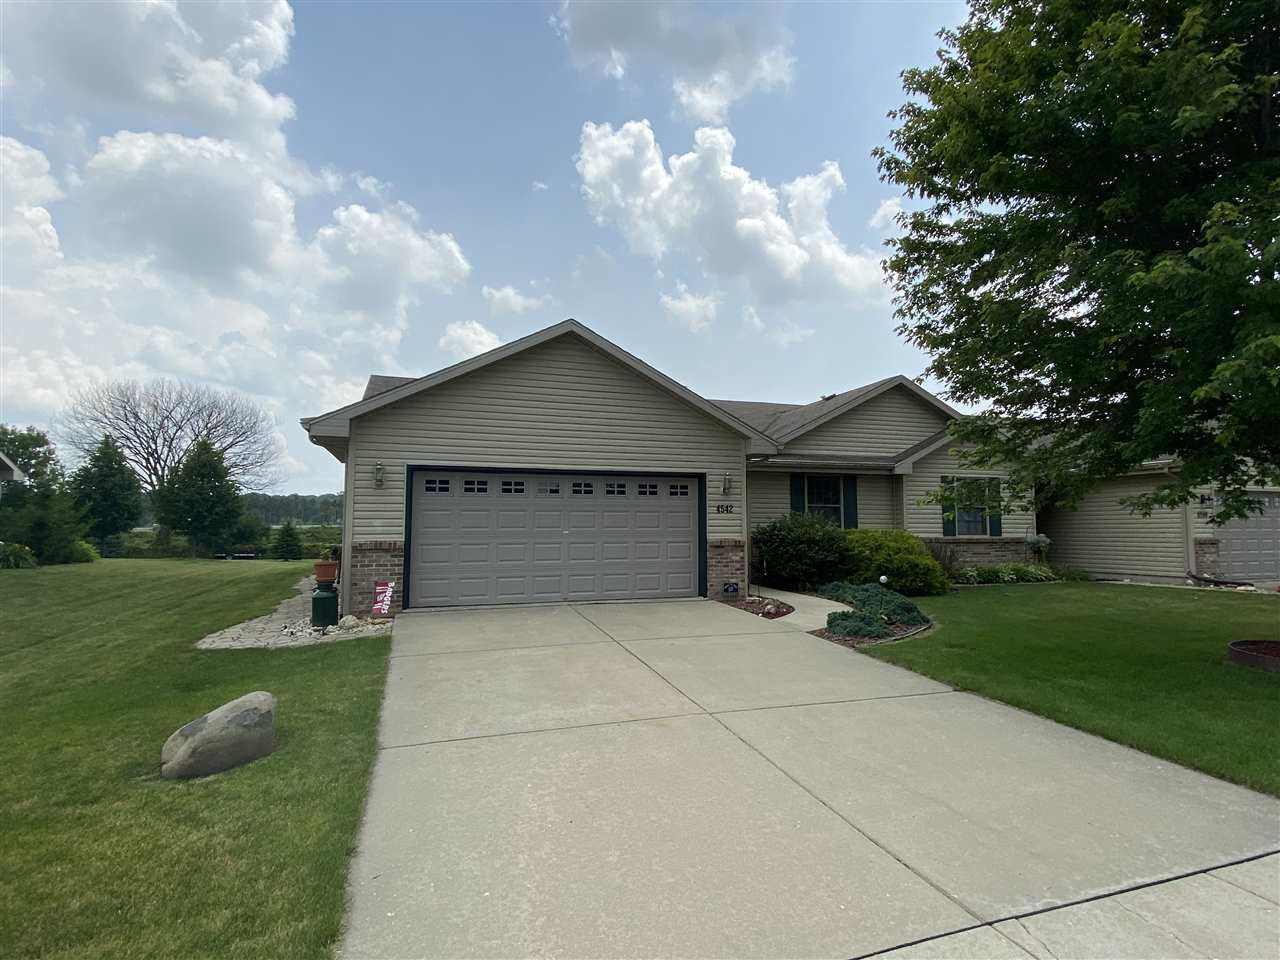 f_1887957_01 Our Listings at Best Realty of Edgerton